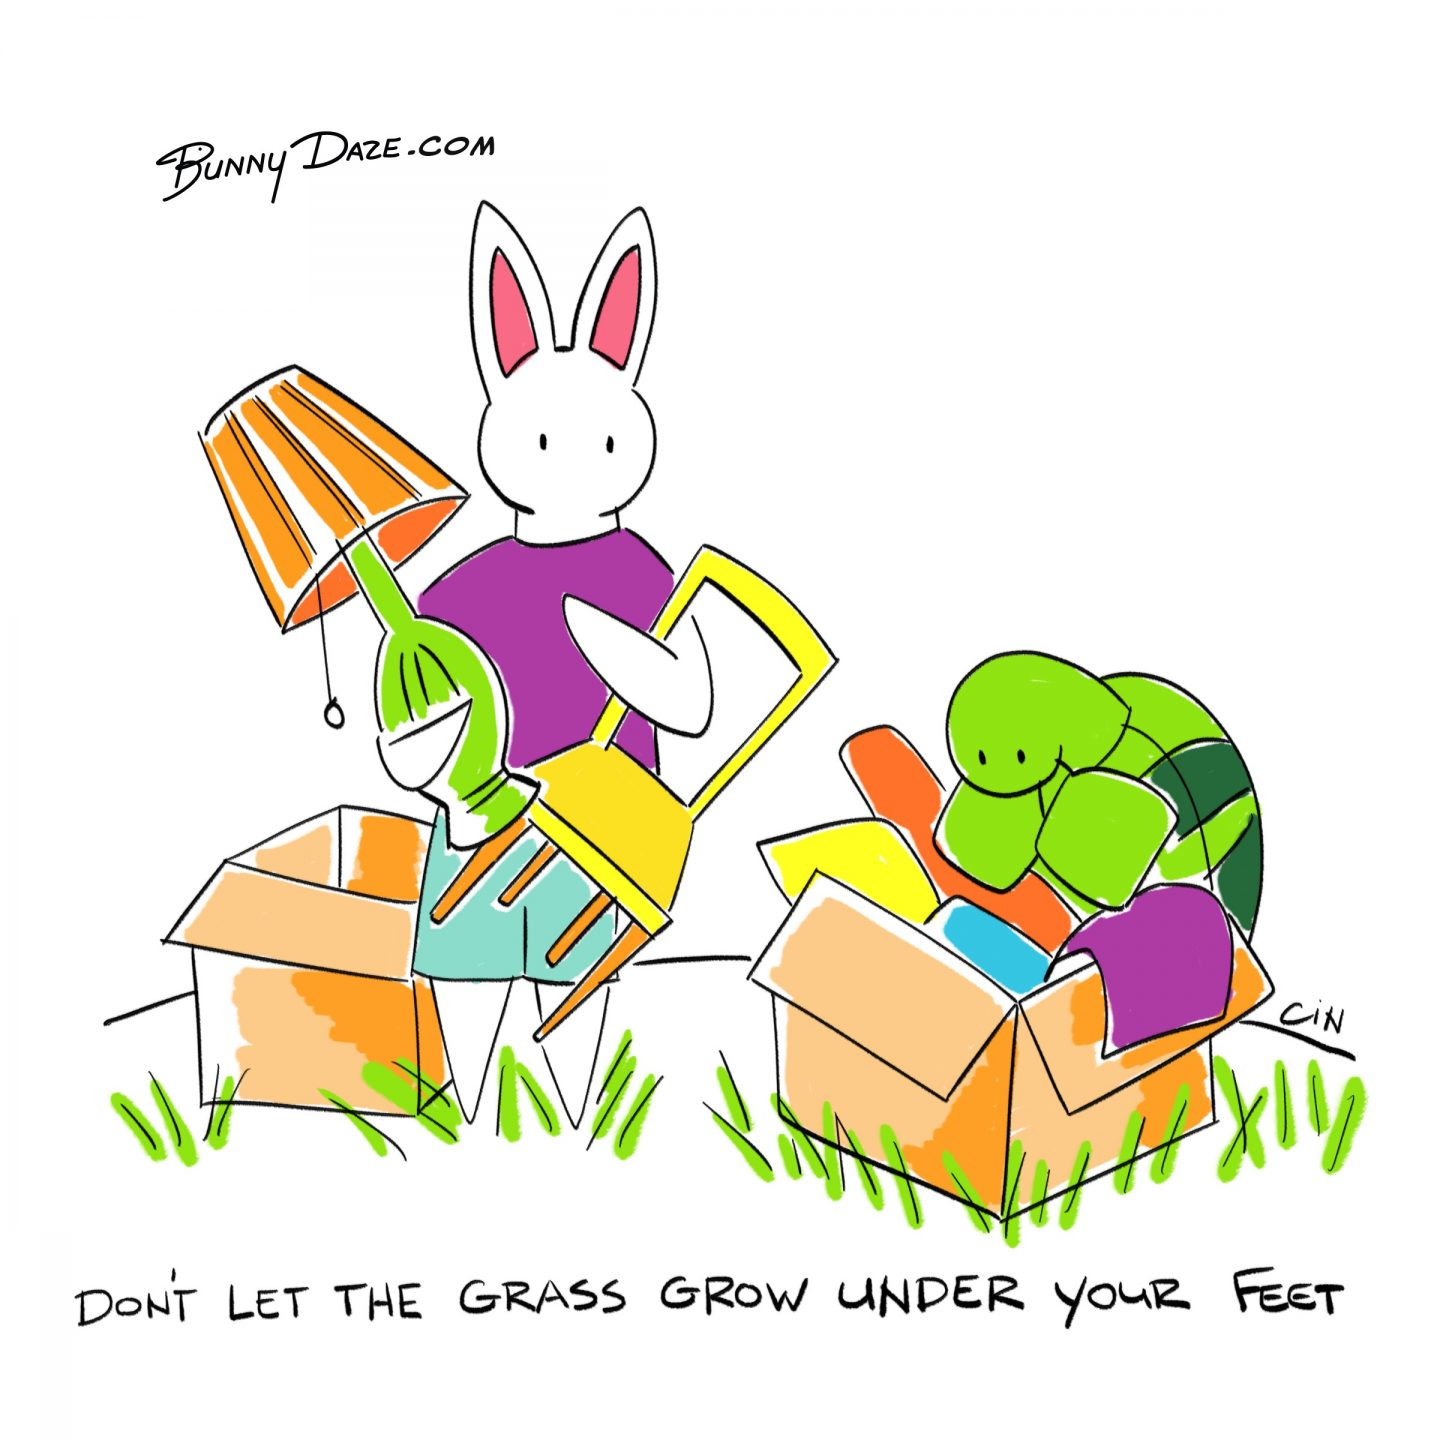 Don't let the grass grow under your feet.